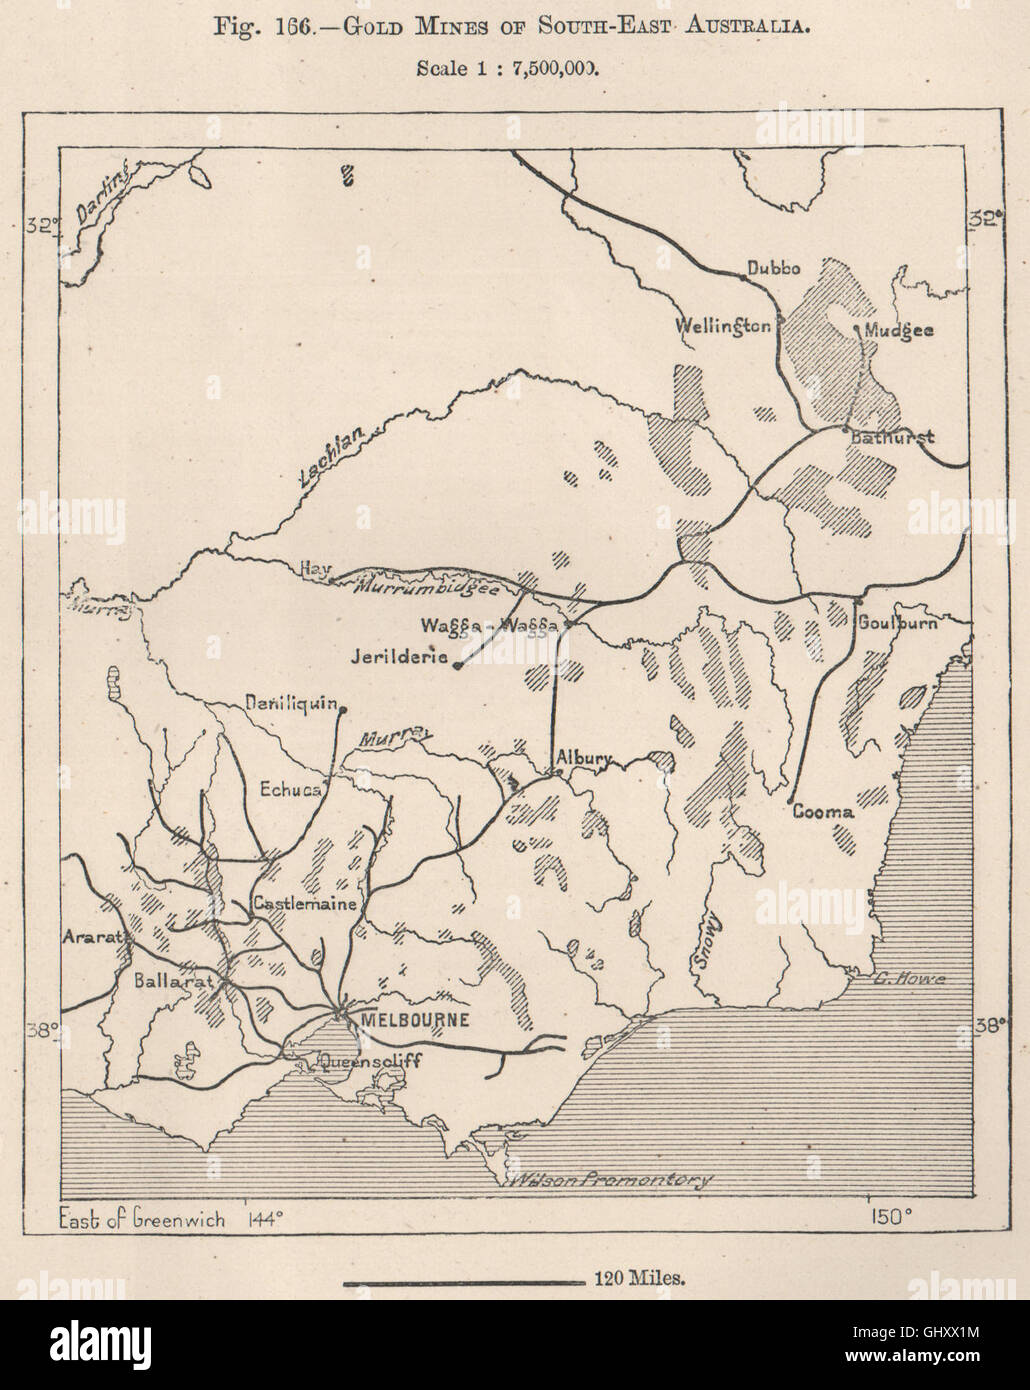 Gold mines of South-East Australia, 1885 antique map - Stock Image